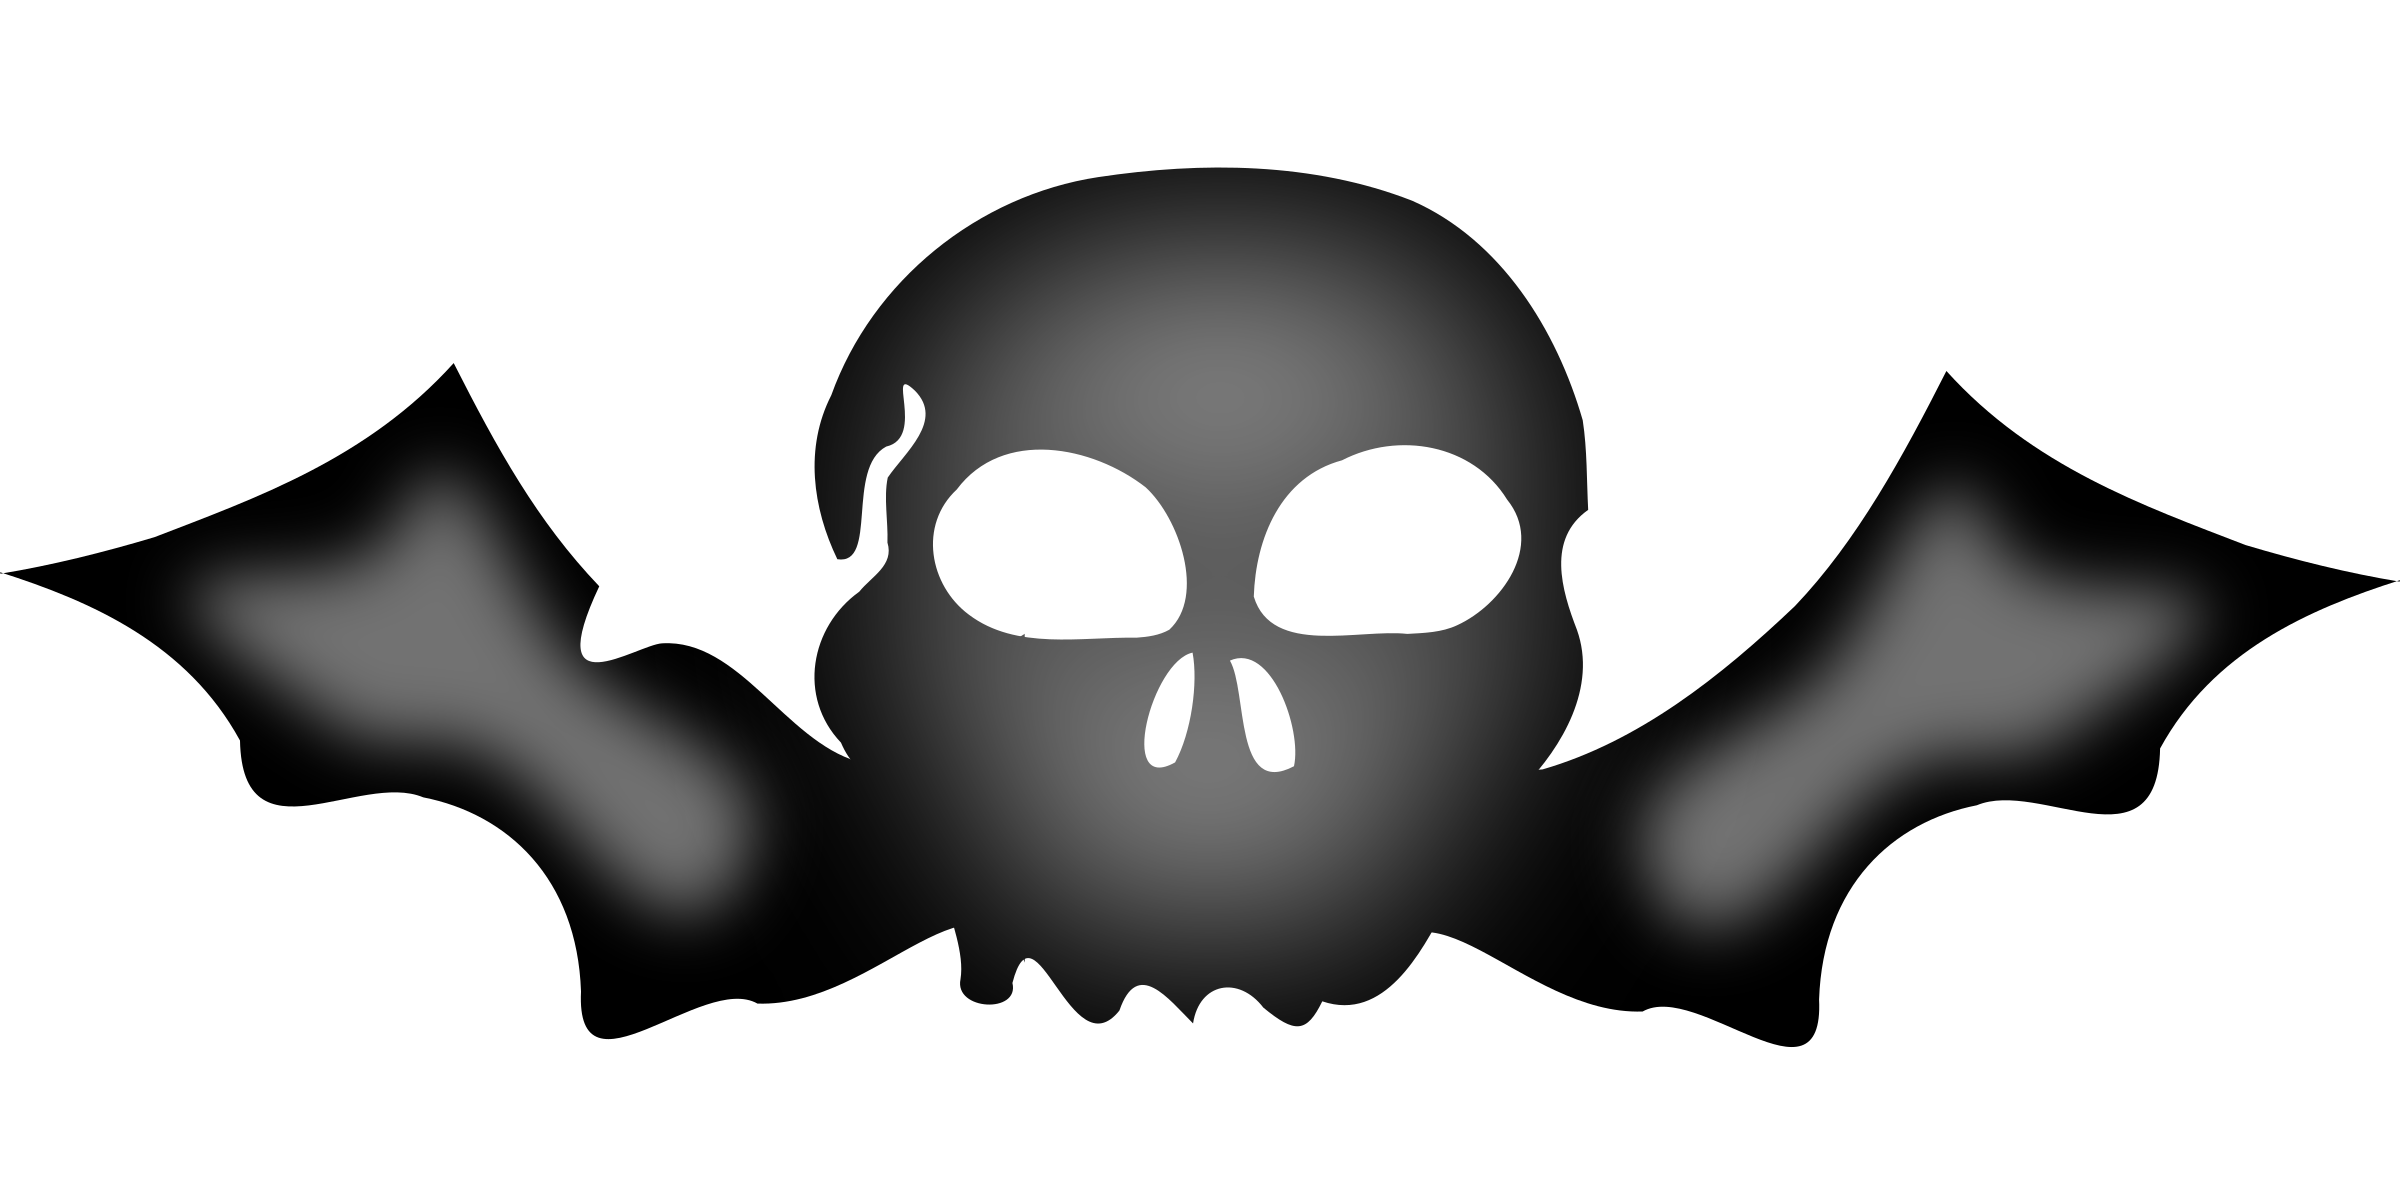 Wing clipart skull. A with bat wings